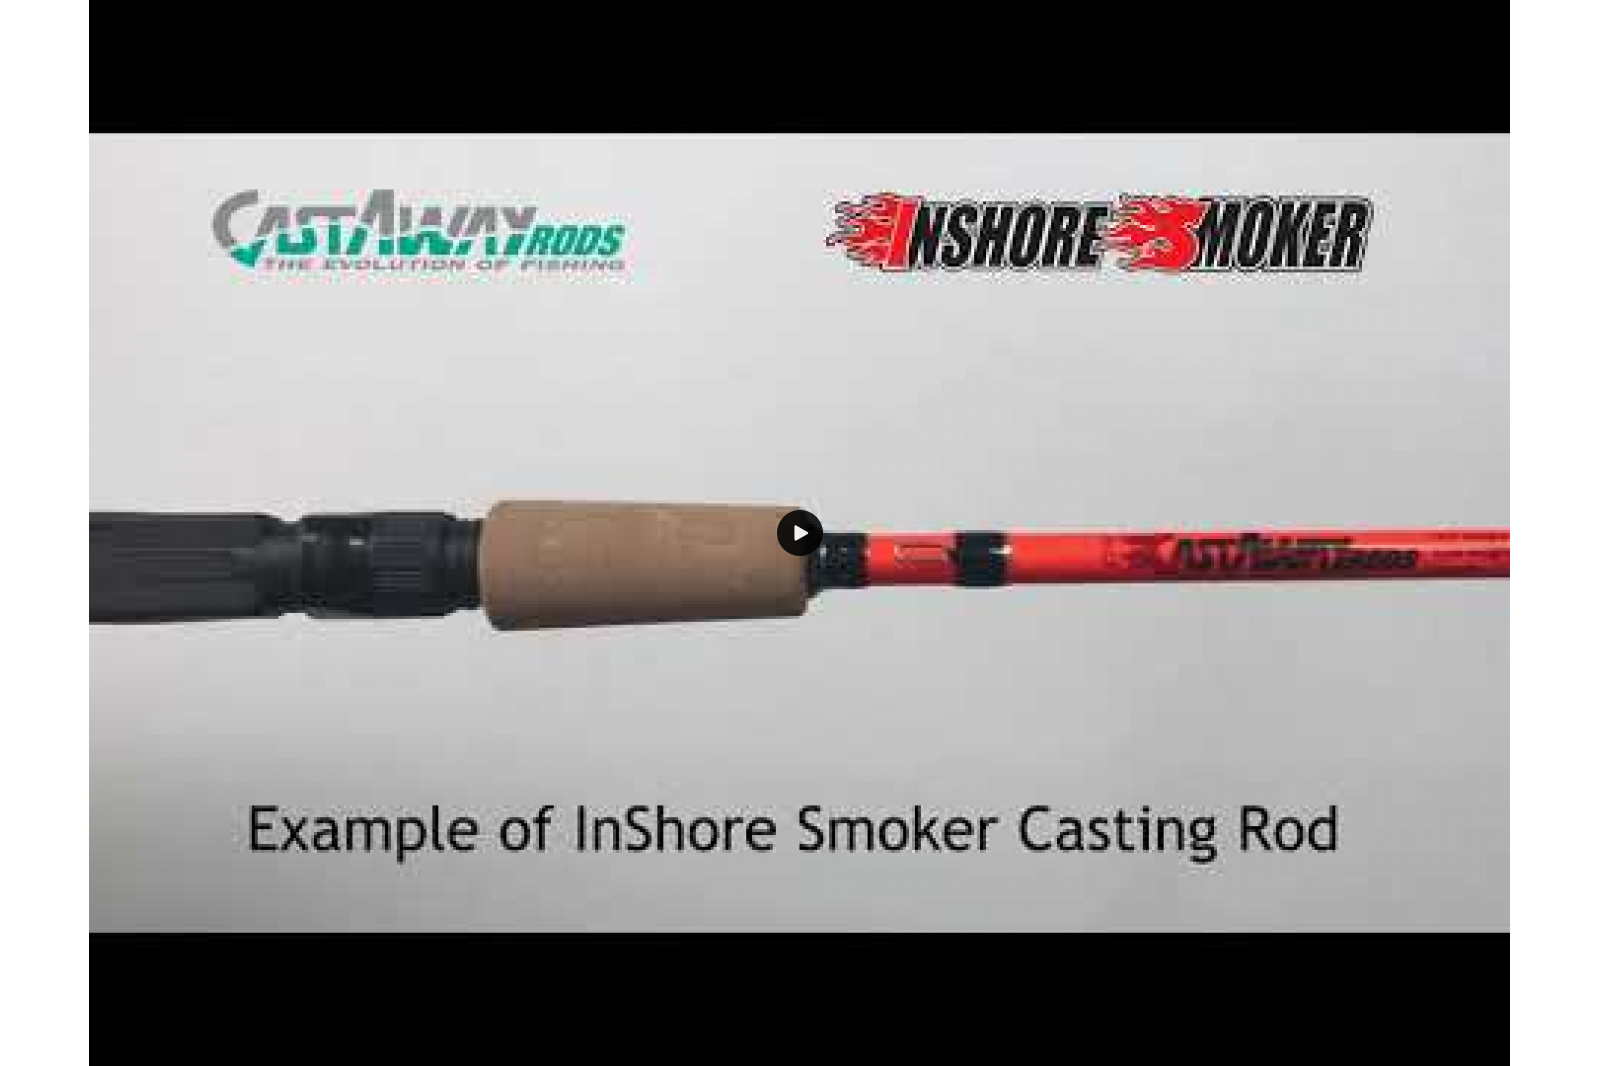 InShore Smoker - ISMC7 - Top Waters / Plastics / Popping Corks